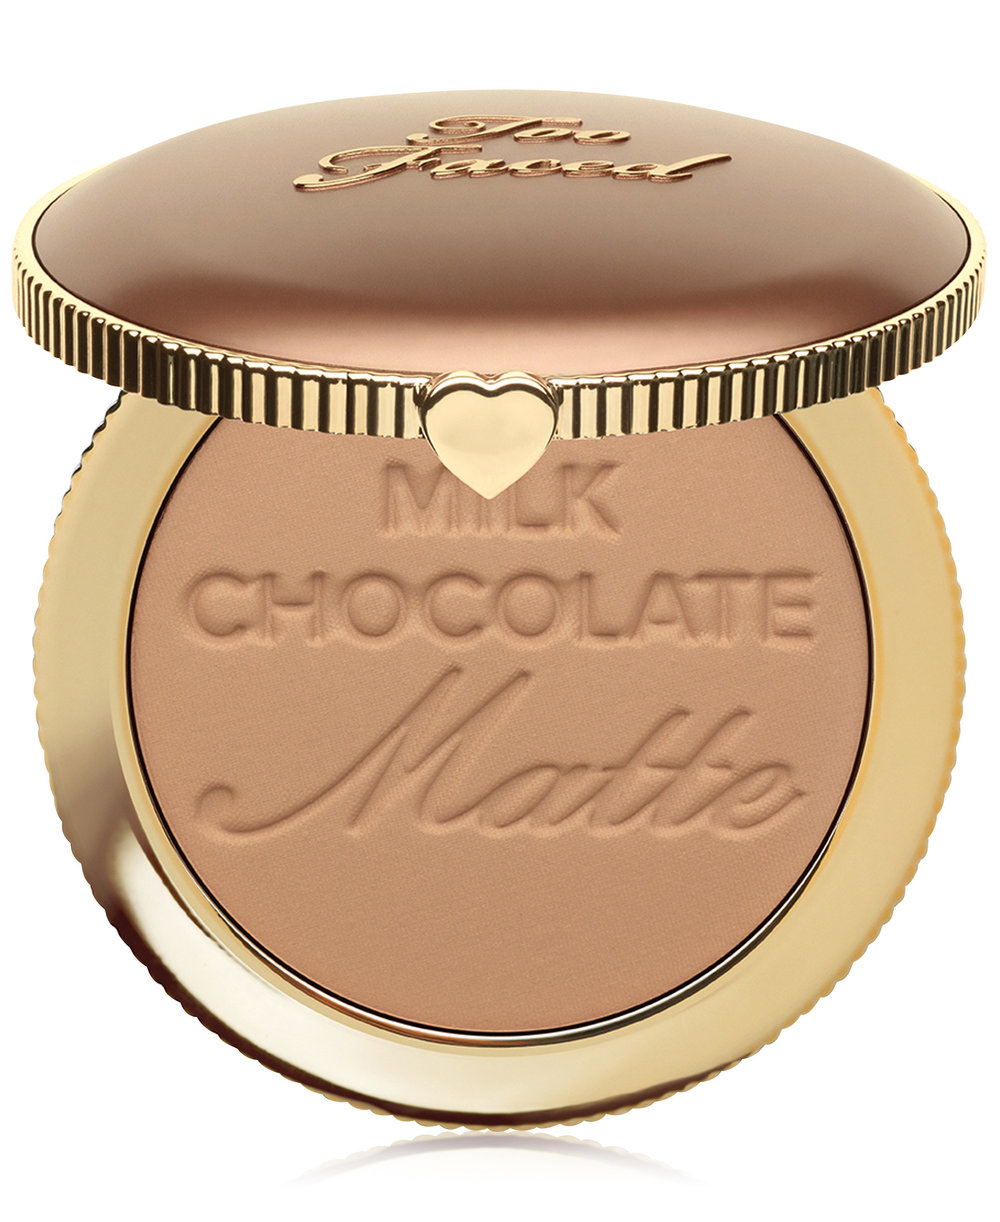 Too Faced Chocolate Soleil Bronzer - $30.00.jpg